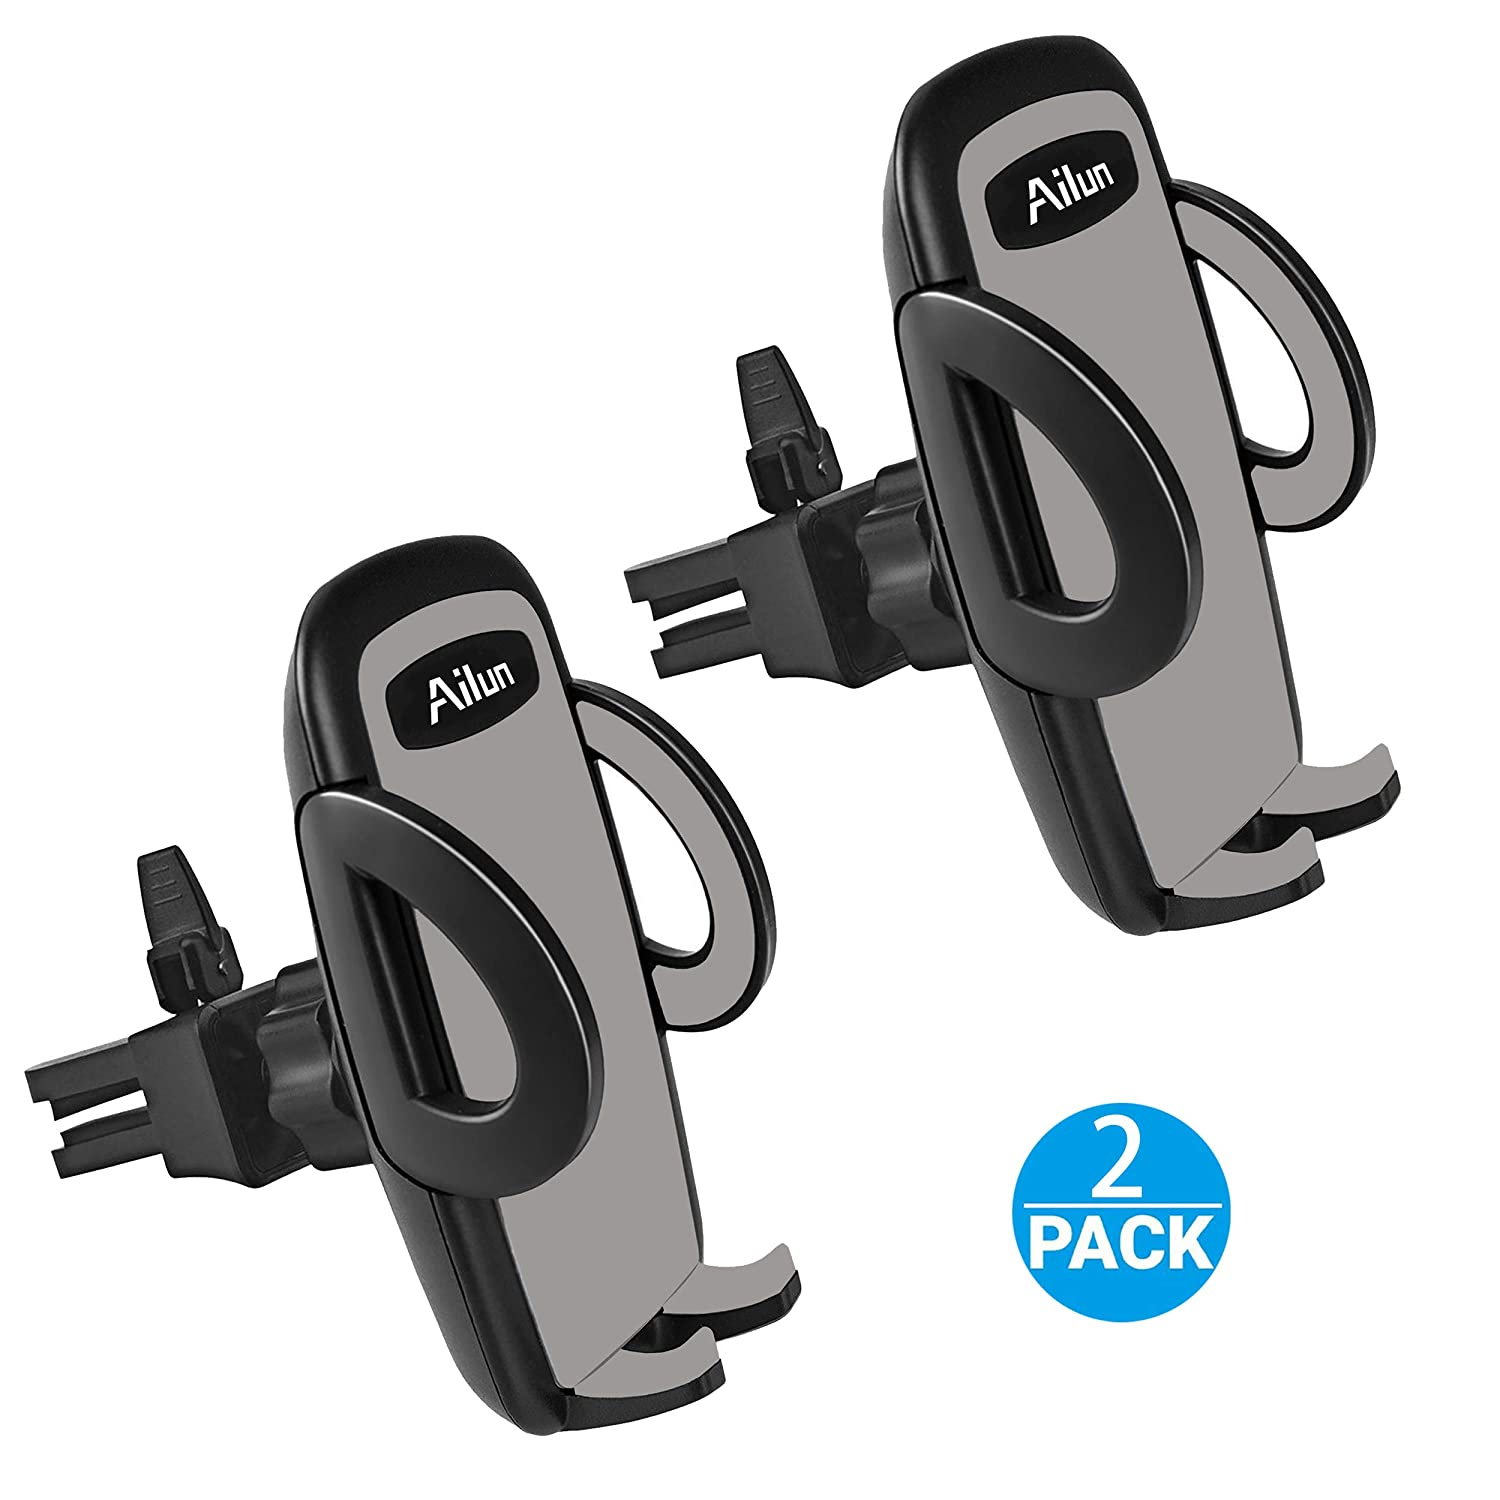 Ailun Car Phone Mount, Air Vent Cellphone Holder Cradle[2Pack] Universal Compatible with iPhone X/Xs/XR/Xs Max/8/8Plus/7, Compatible with Galaxy S9/S9+ S8/S8+, Google, LG, HTC and More Smartphones[Black] siania